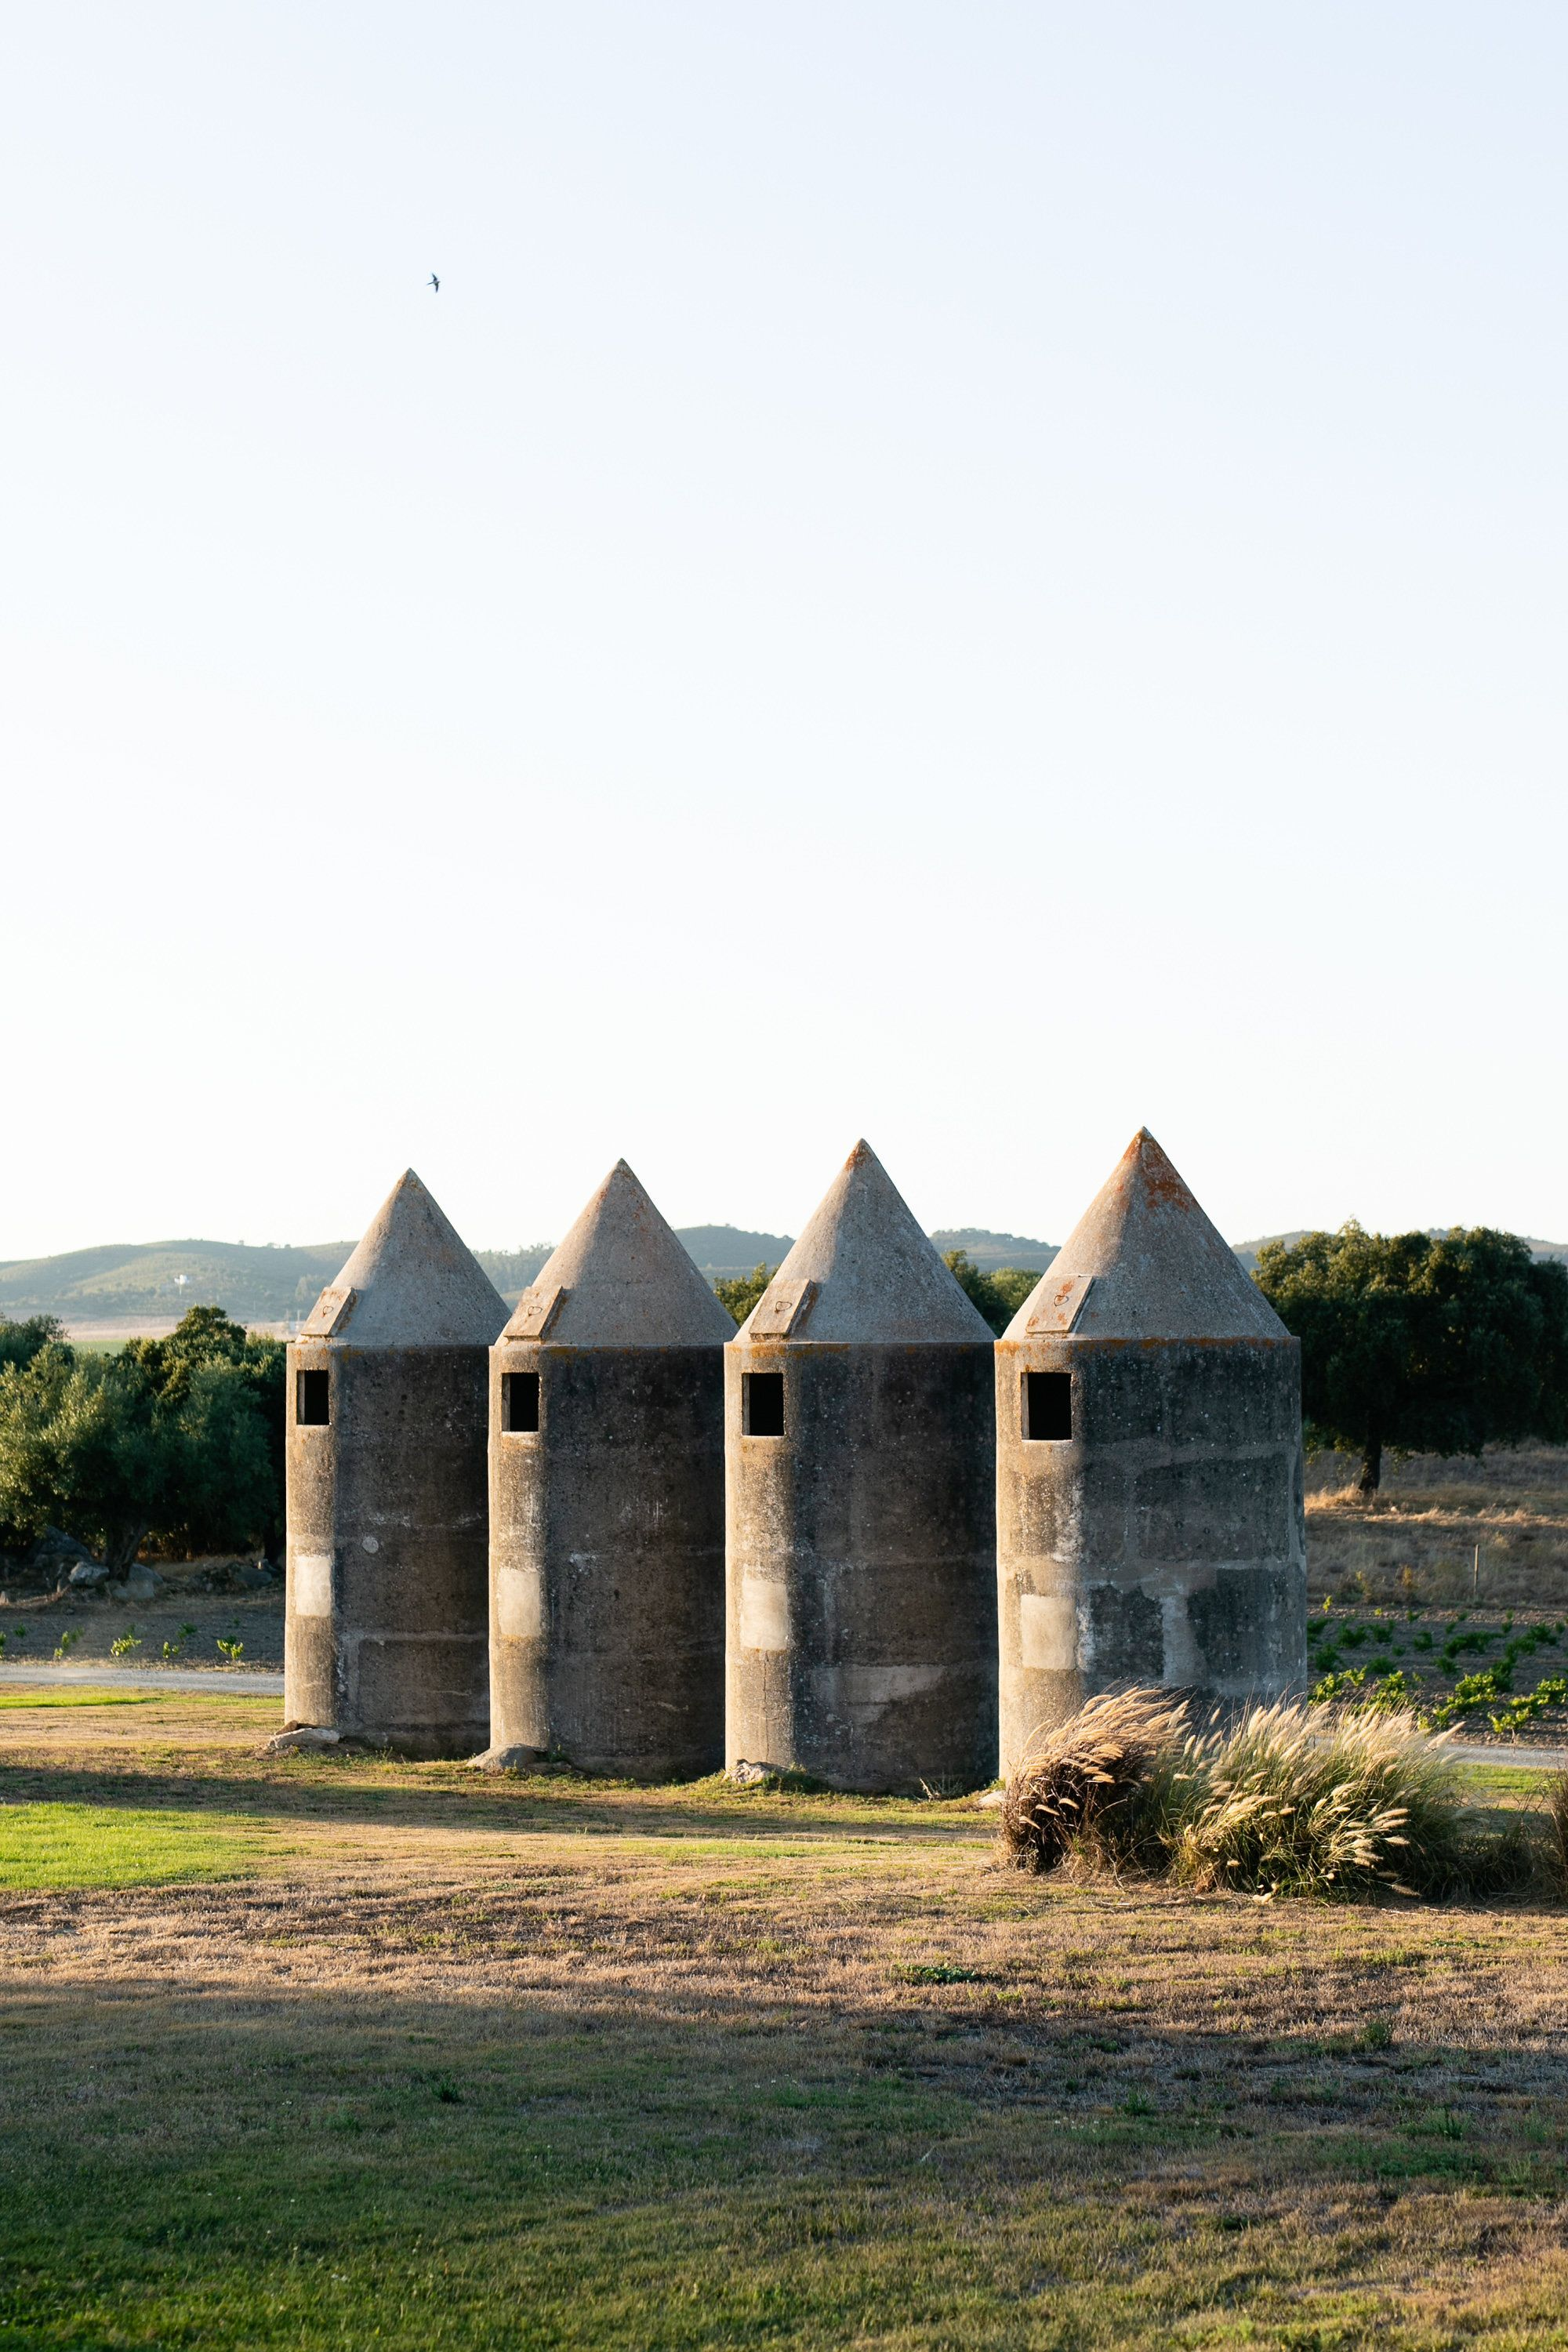 The Silos Were Structures Created To Store Grain In The Wintertime